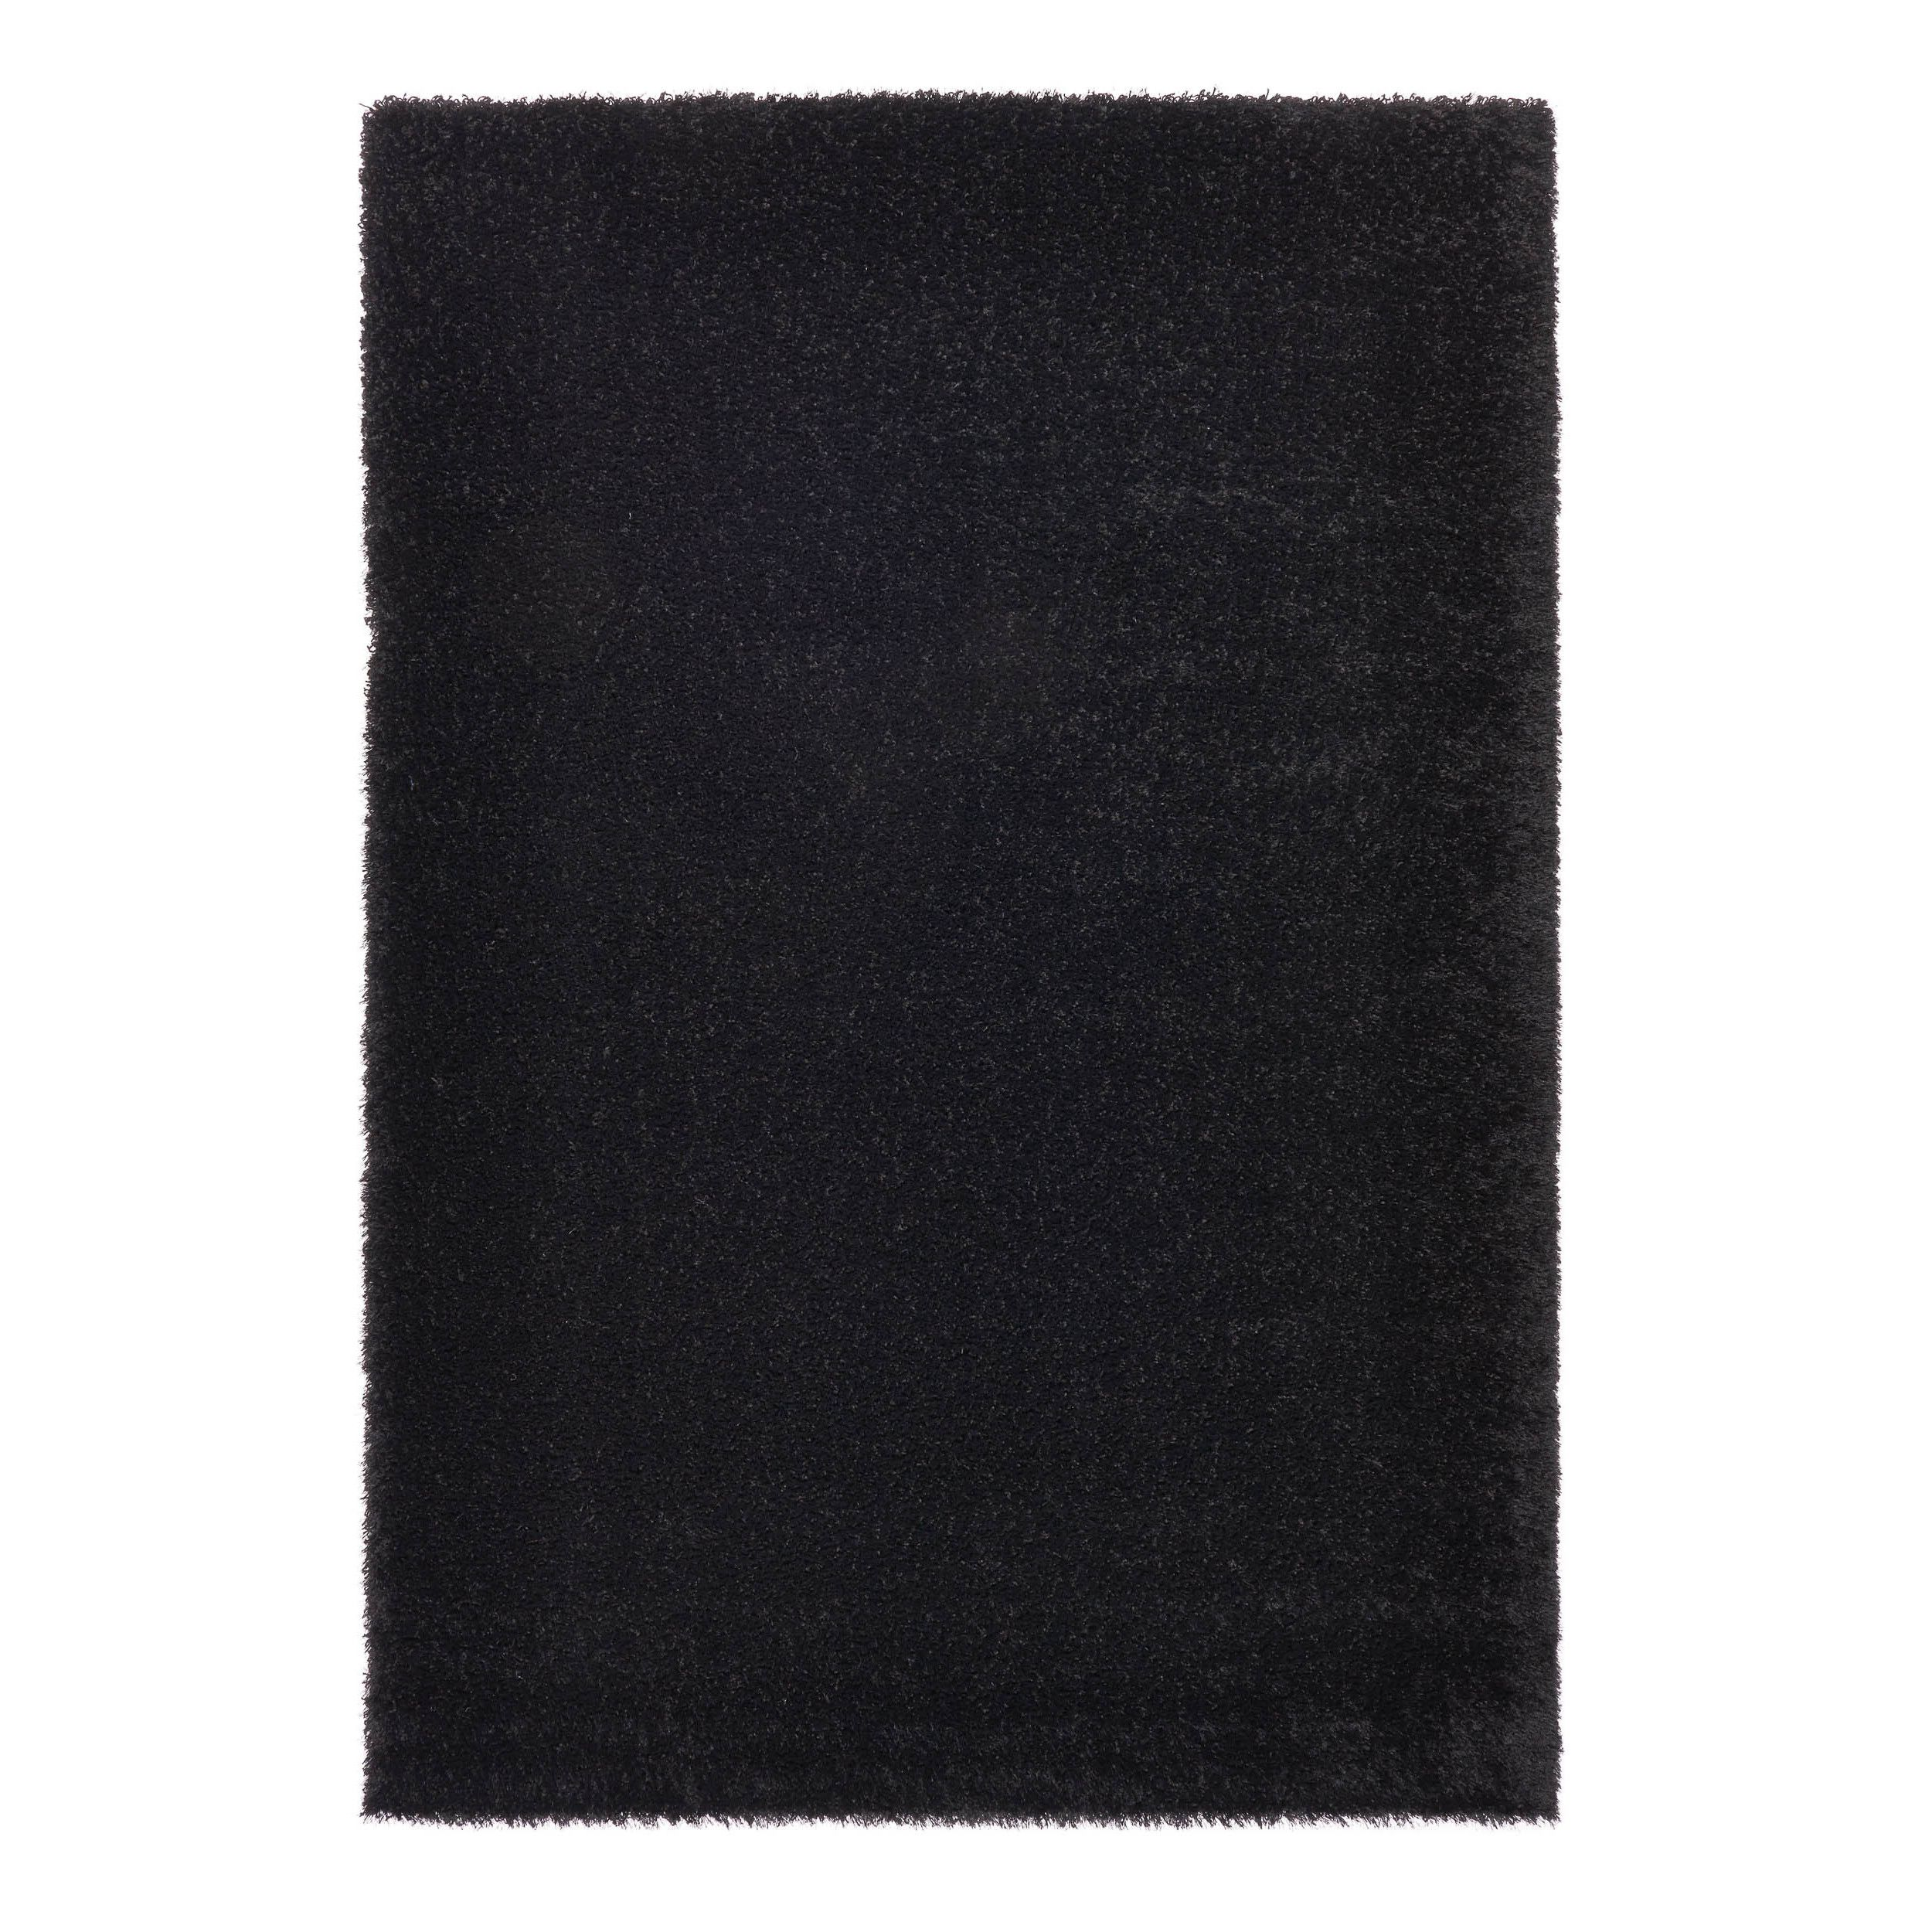 "Somette Slater Collection Black Solid Area Rug (6'7"" x 9'6"") (Black Solid (6'7"" x 9'6"")), Size 6'7"" x 9'6"""